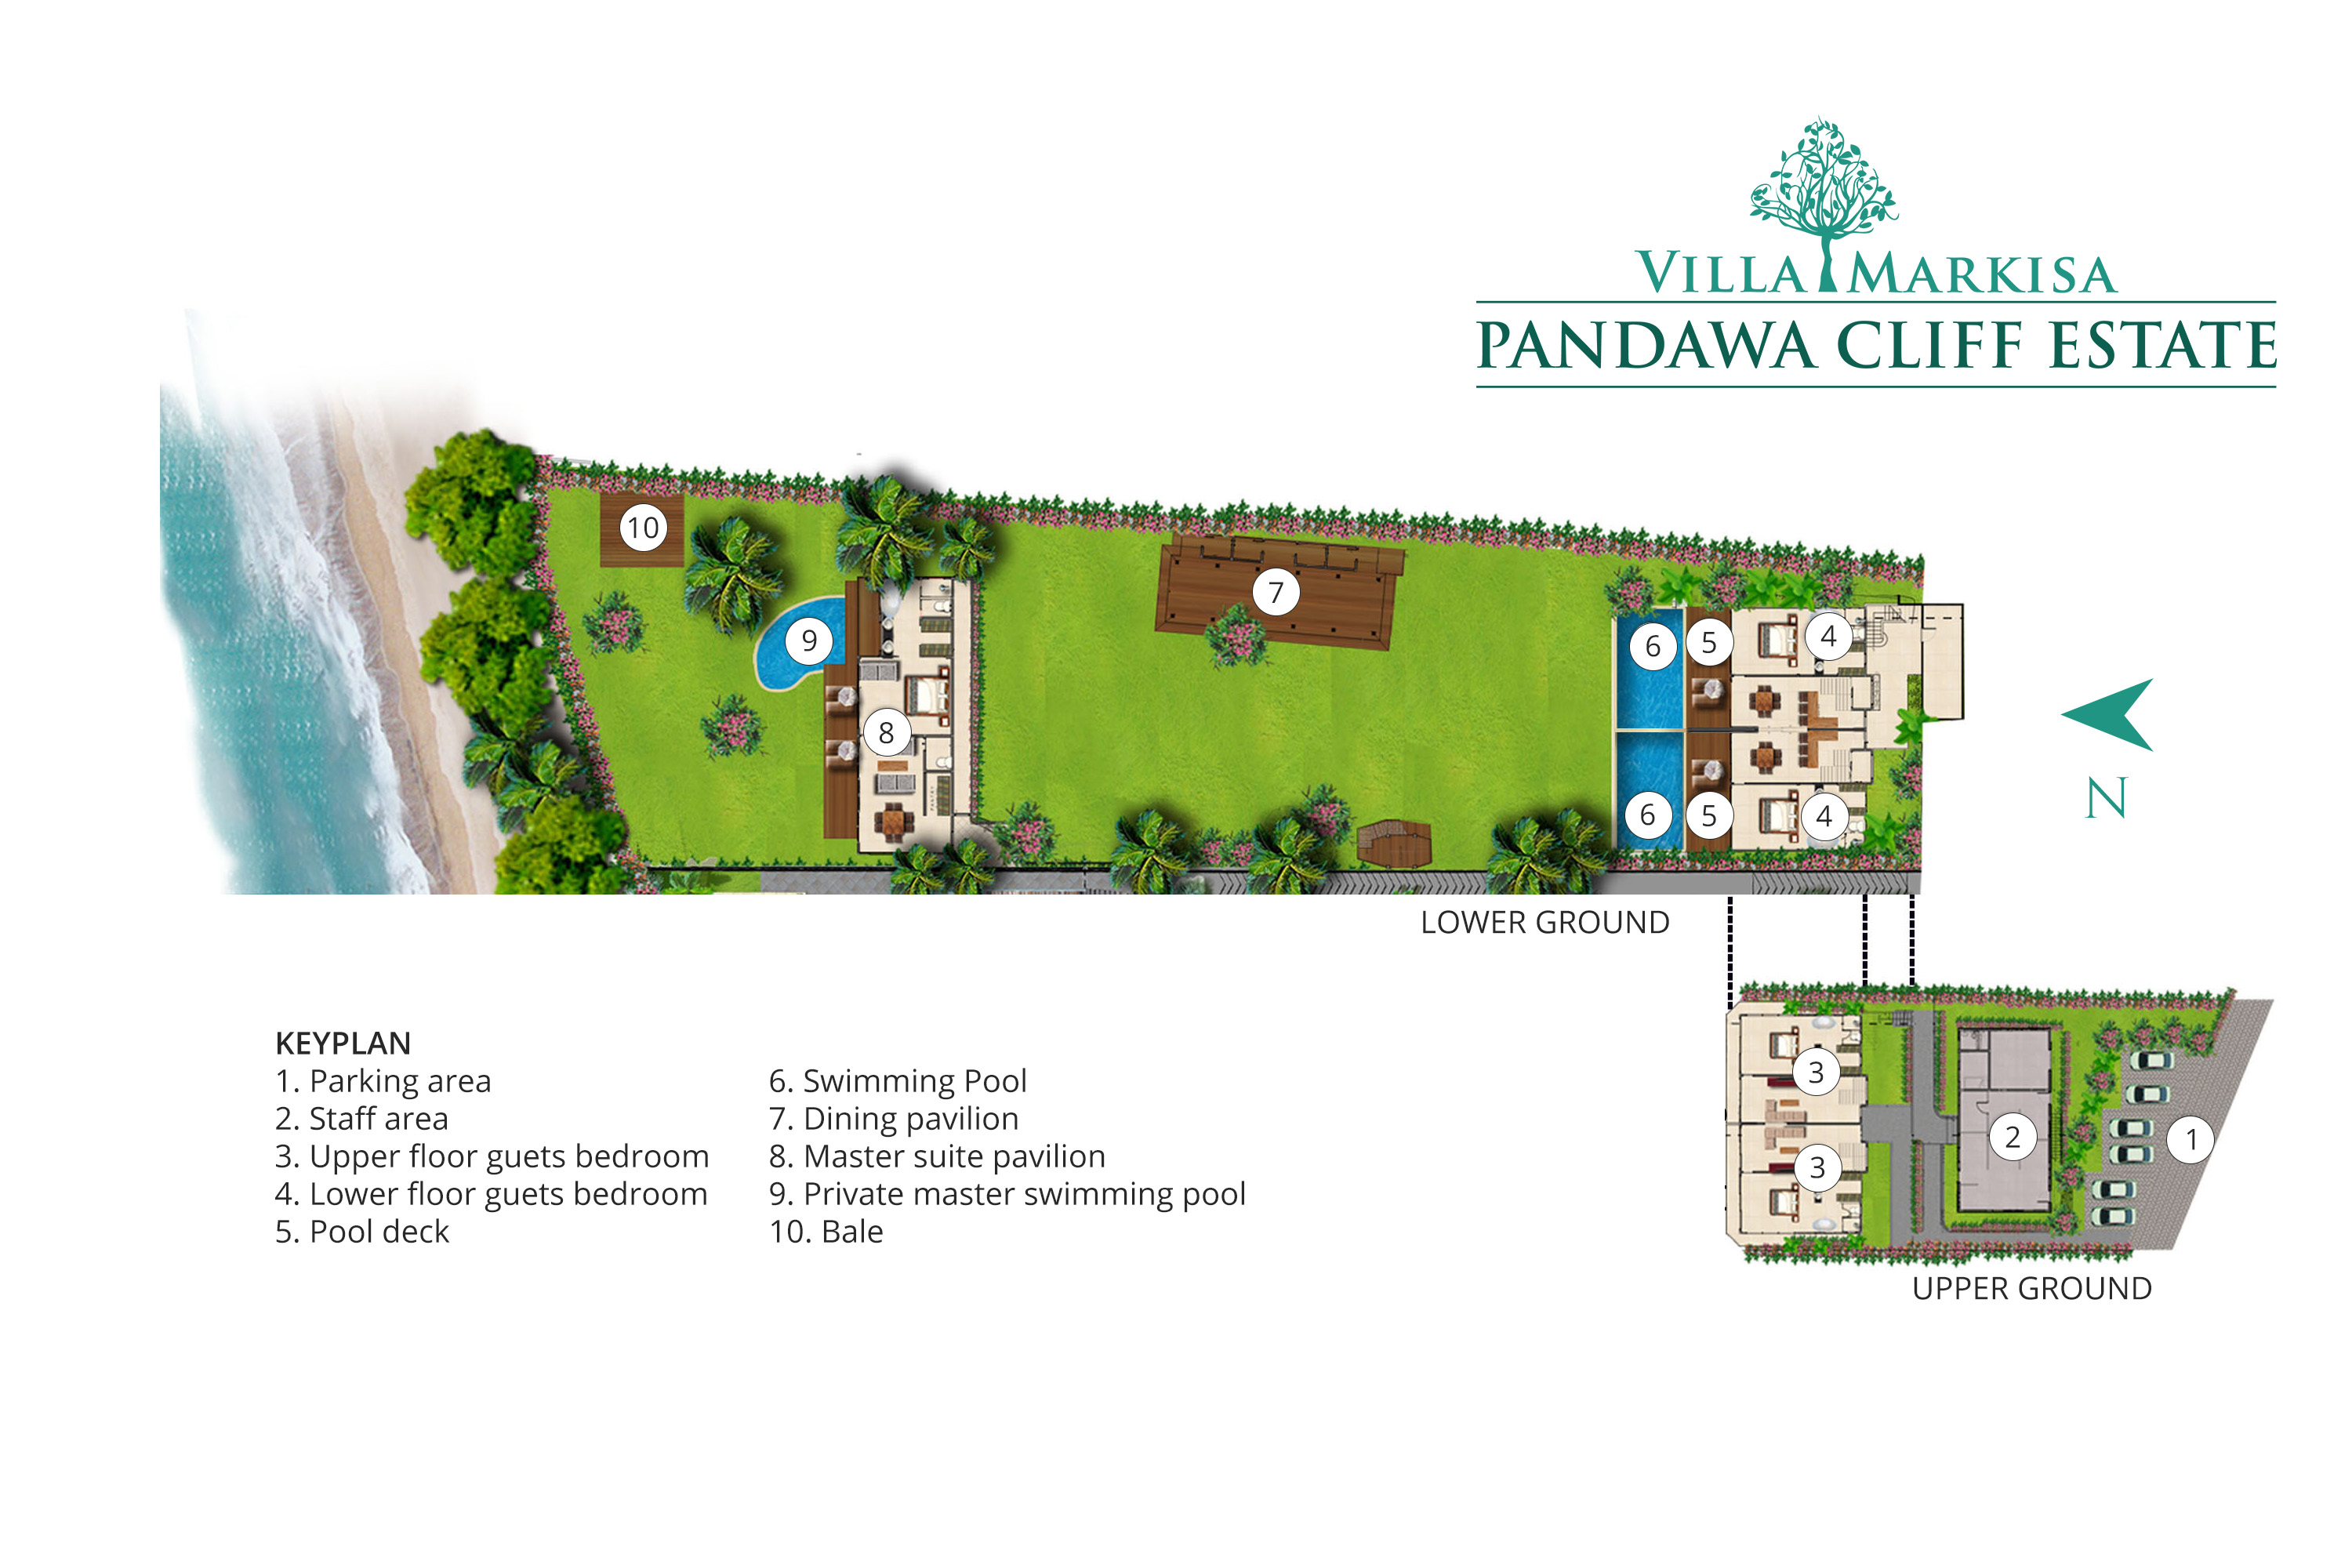 Pandawa Cliff Estate - Villa Markisa - Floorplan